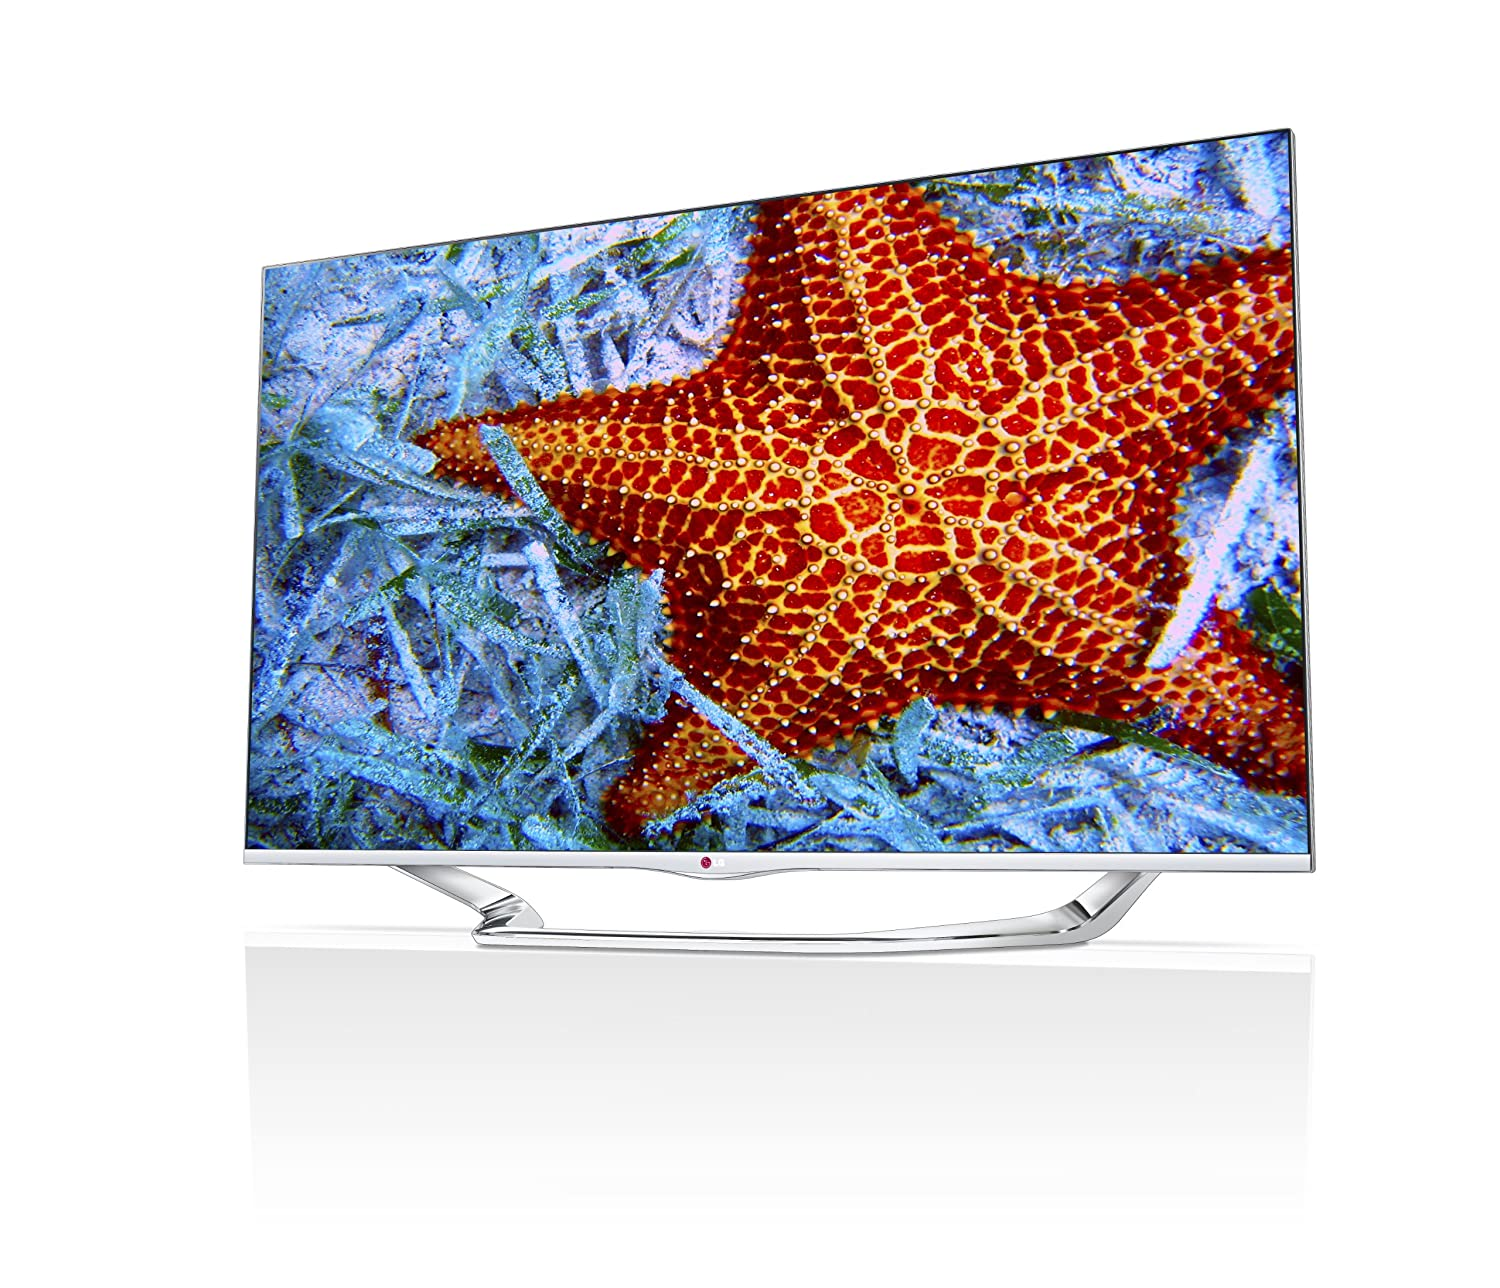 LG Electronics 60-Inch Cinema Screen Cinema 3D 1080p 240Hz LED-LCD HDTV with Smart TV and 3D Glasses $1999